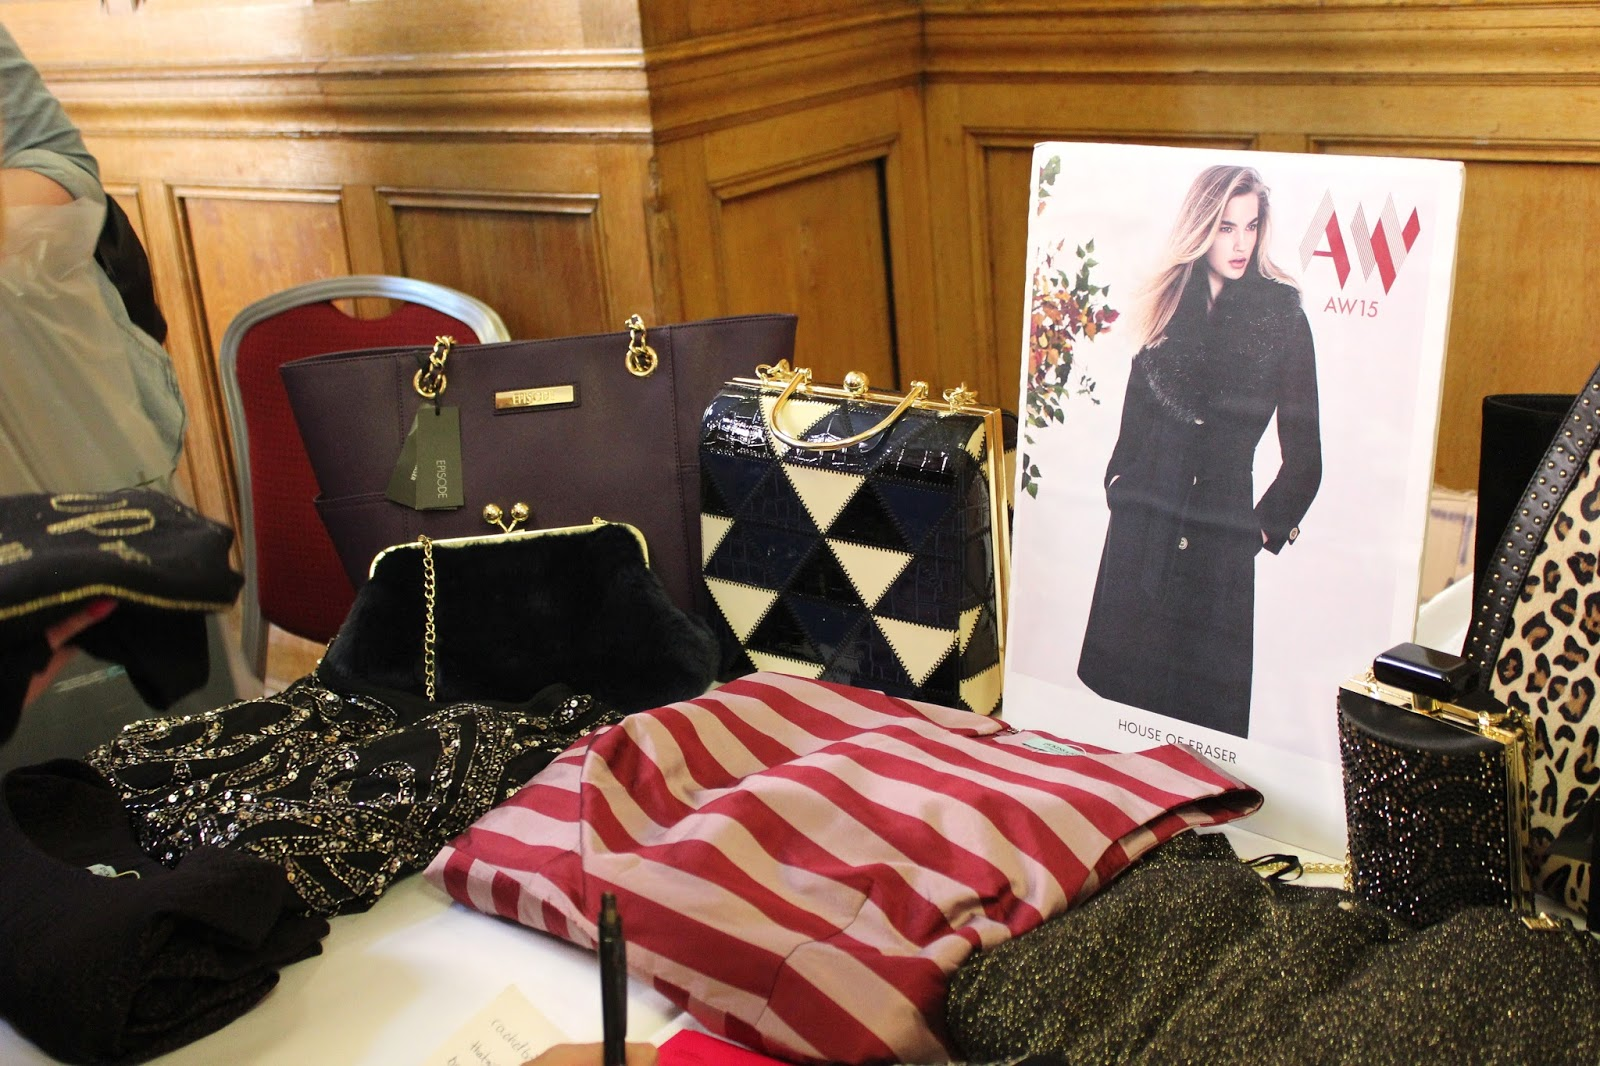 Georgie Minter-Brown actress blogger big blogger conference hotel russell london house of fraser aw15 clothes bags